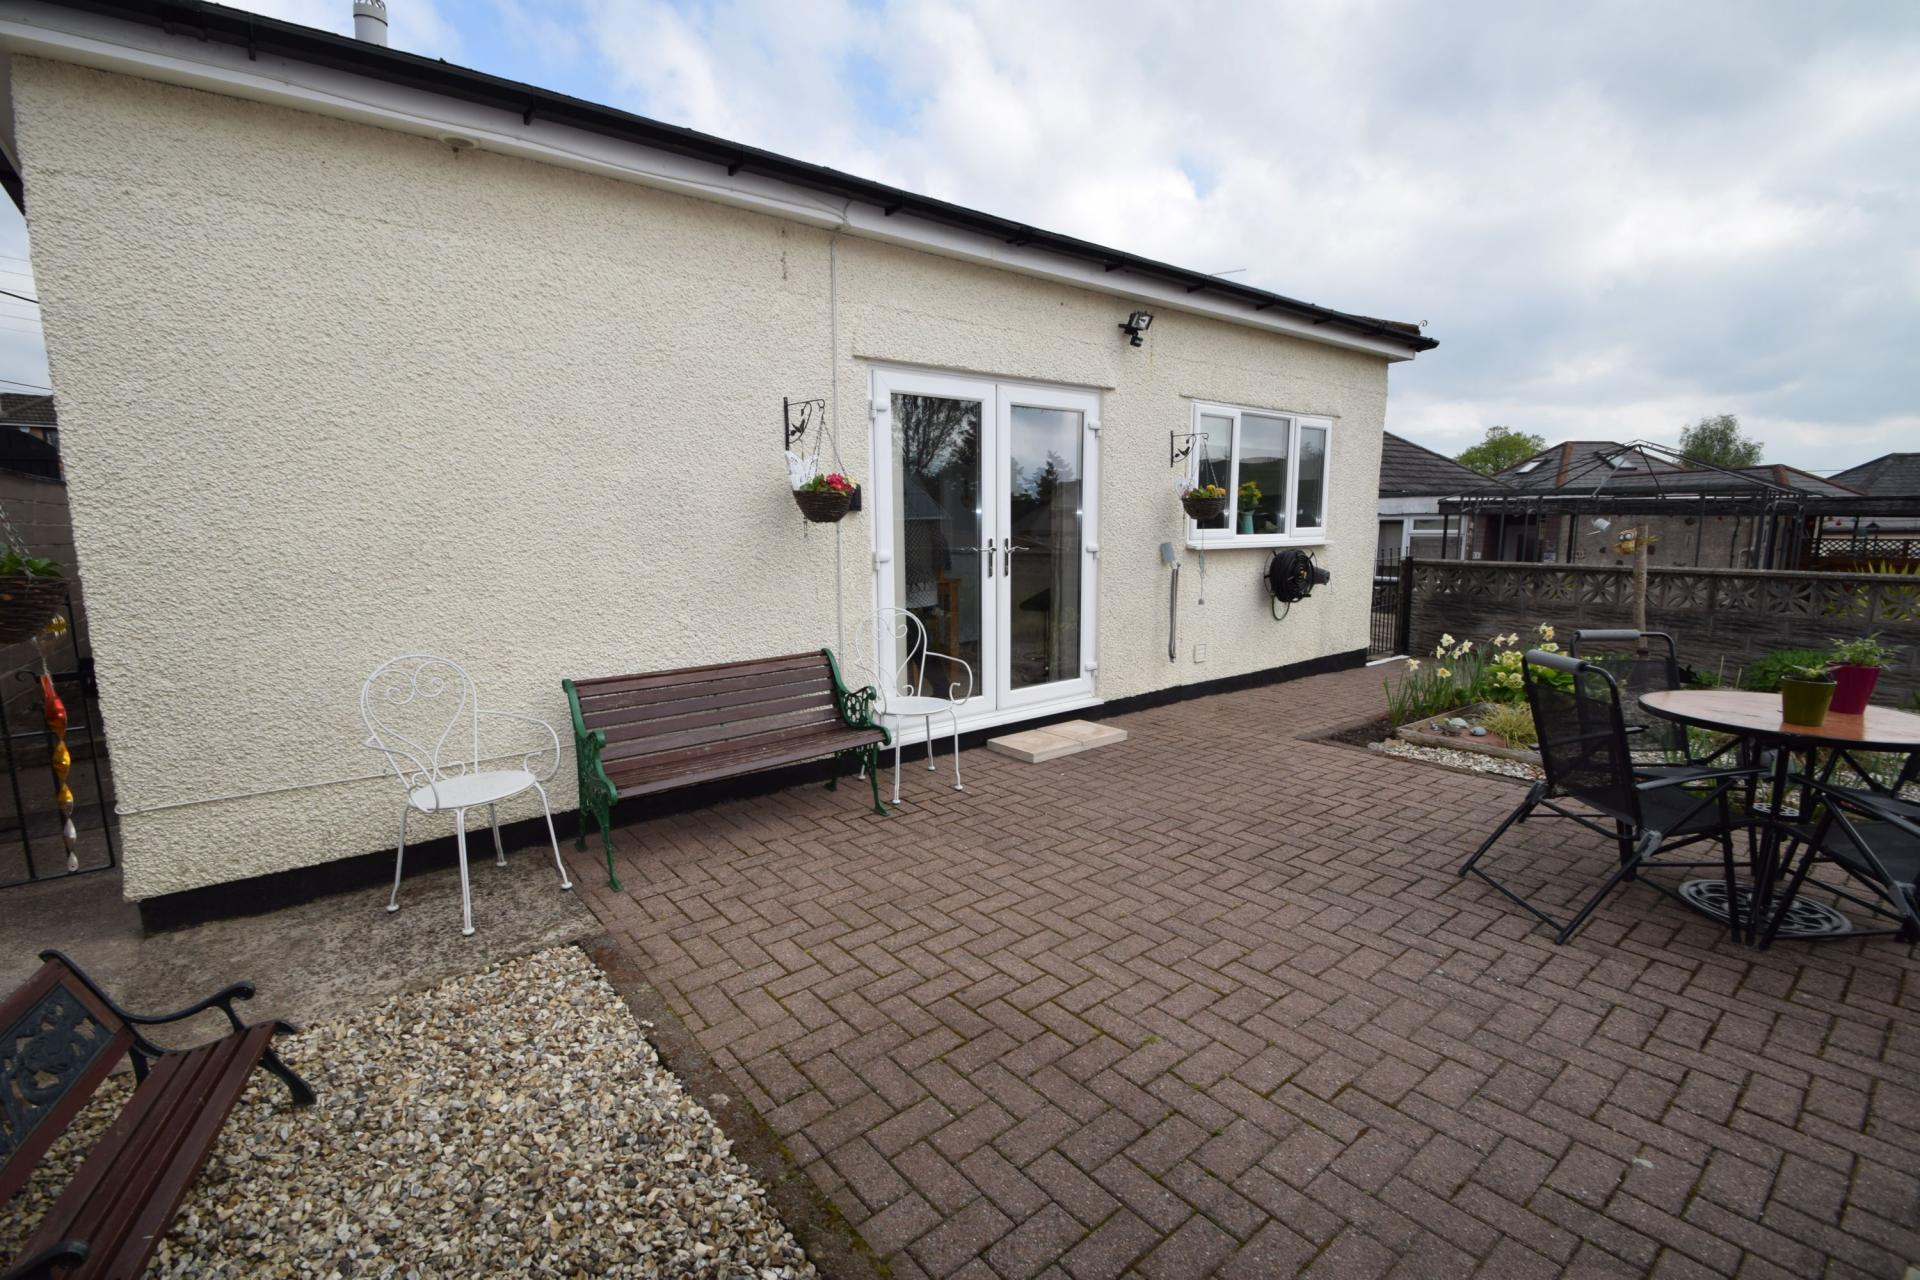 Bedroom bungalow for sale in cwmbran